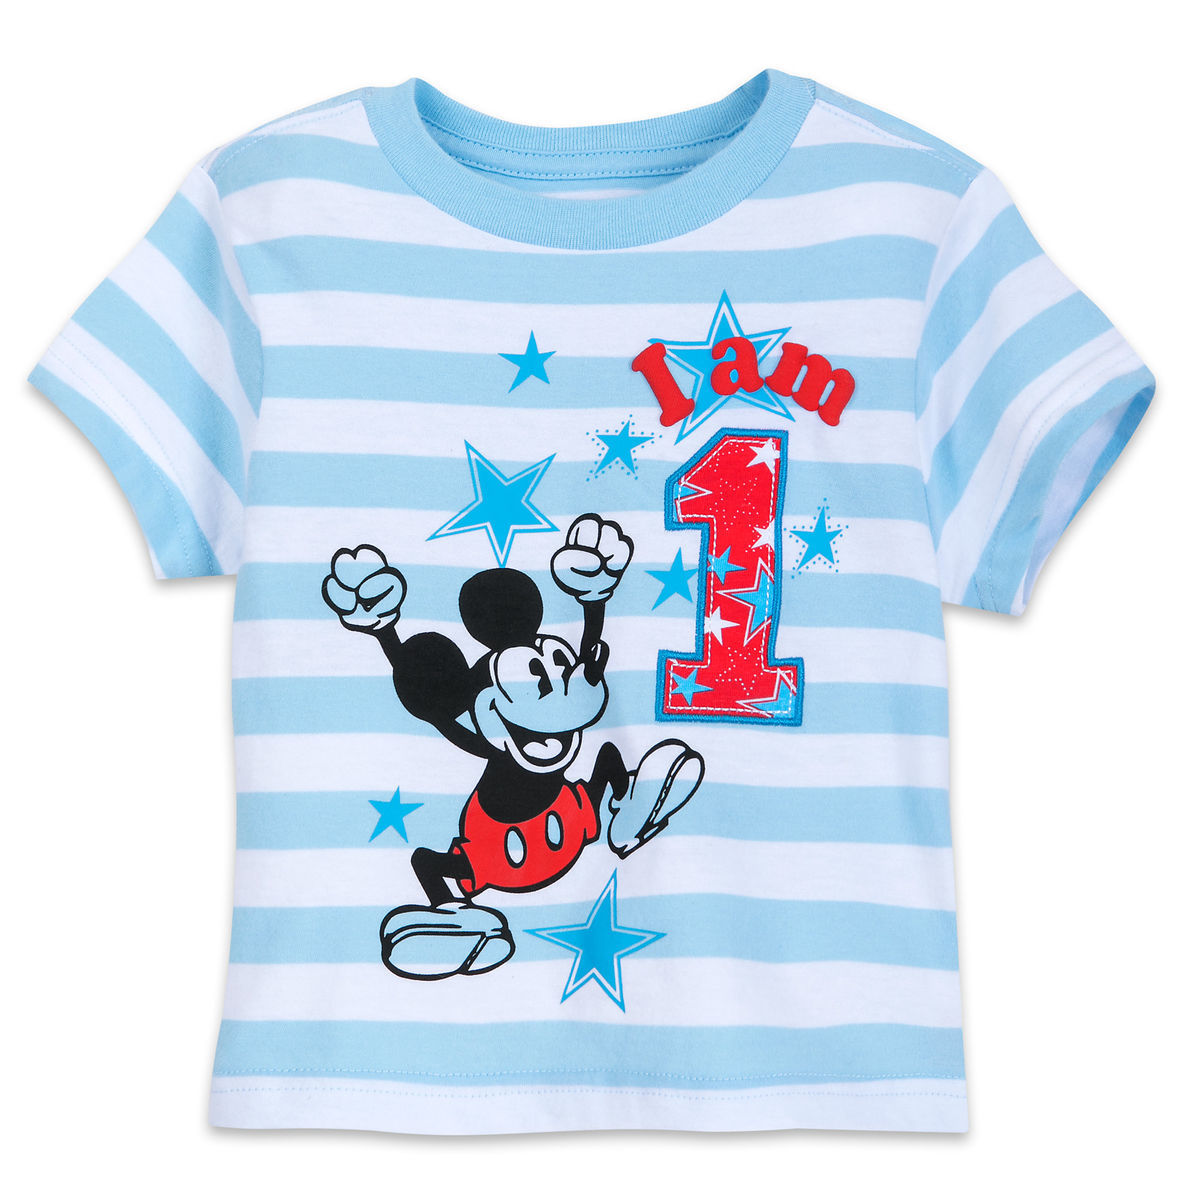 Product Image Of Mickey Mouse Birthday Tee For Boys 2